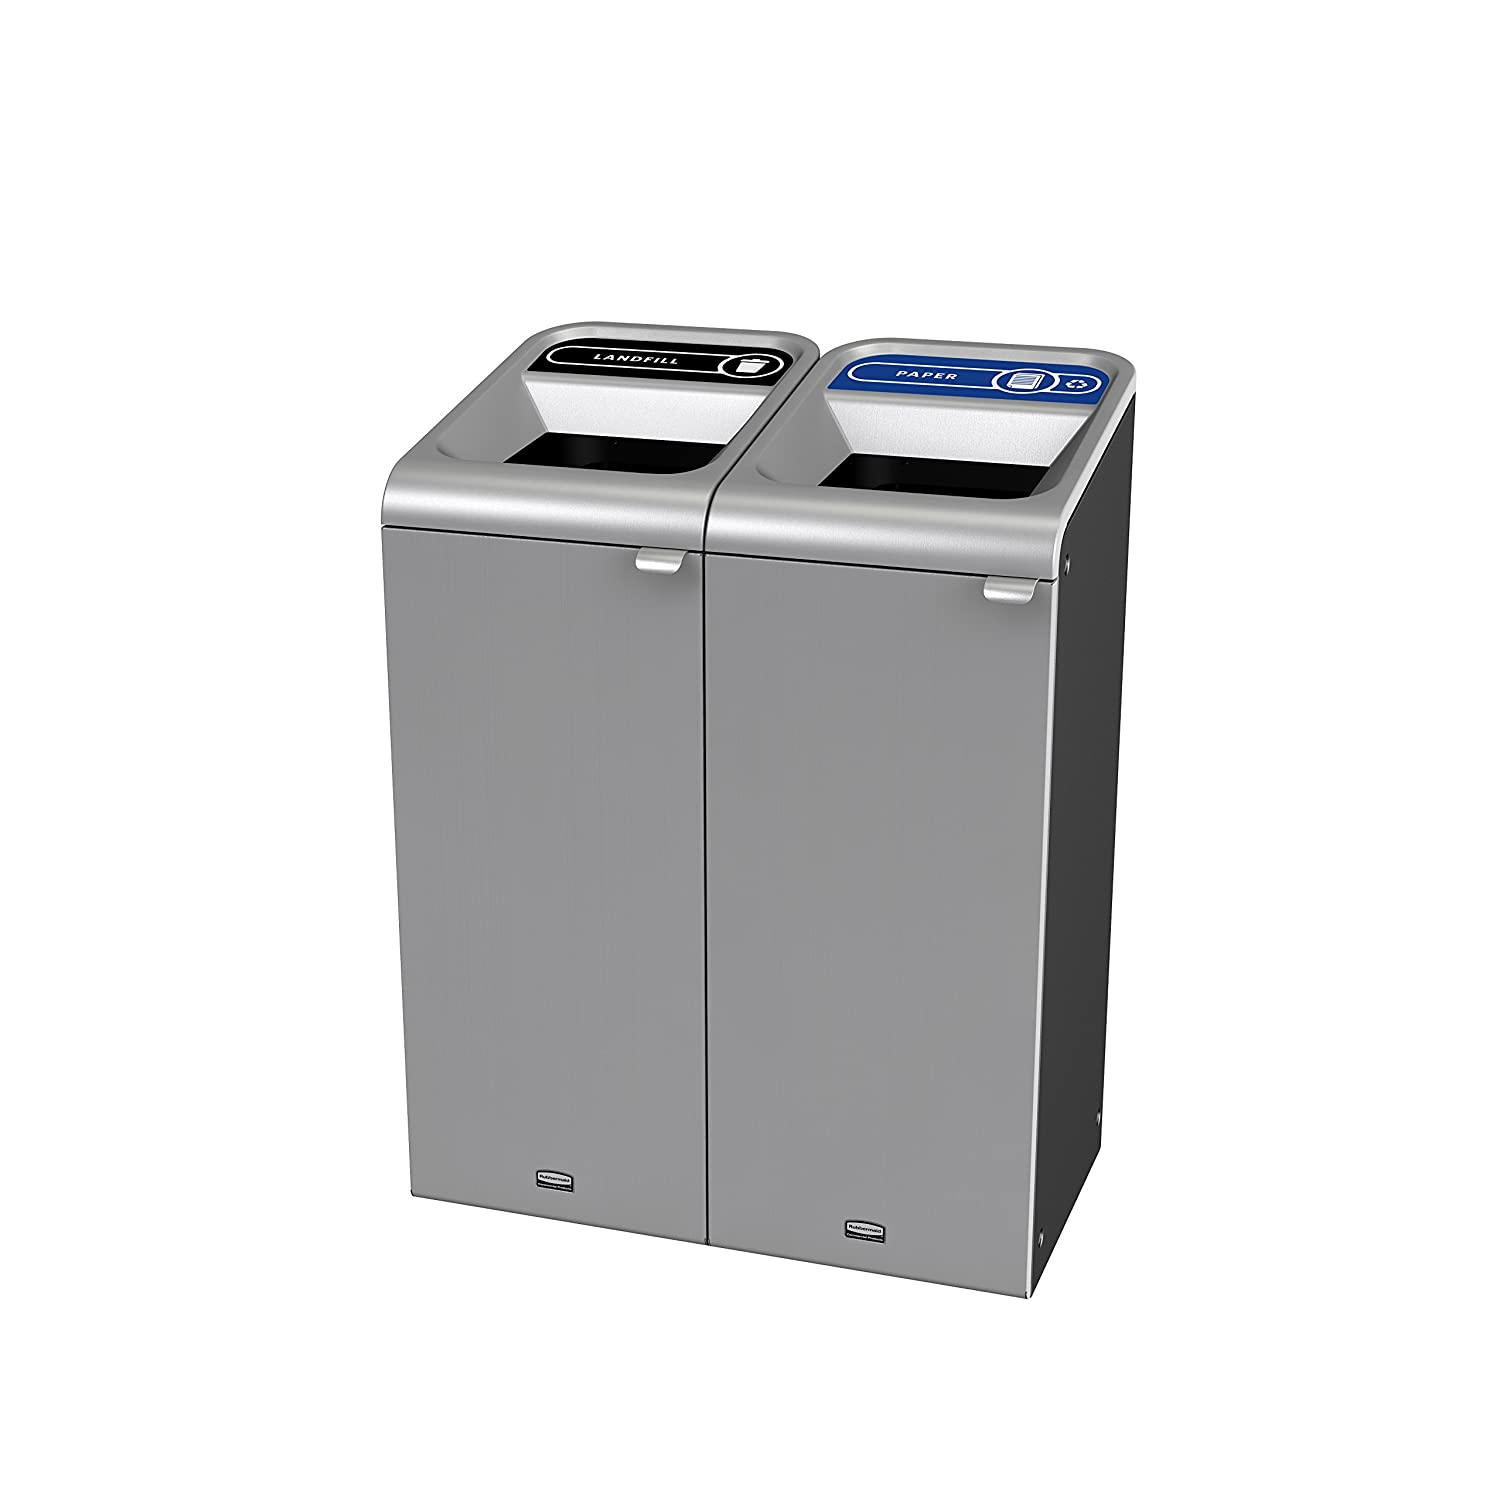 Rubbermaid Commercial Products 1961782 Configure 2 Stream Landfill/Paper Waste Receptacles, 15 gal, Stainless Steel (Pack of 2)